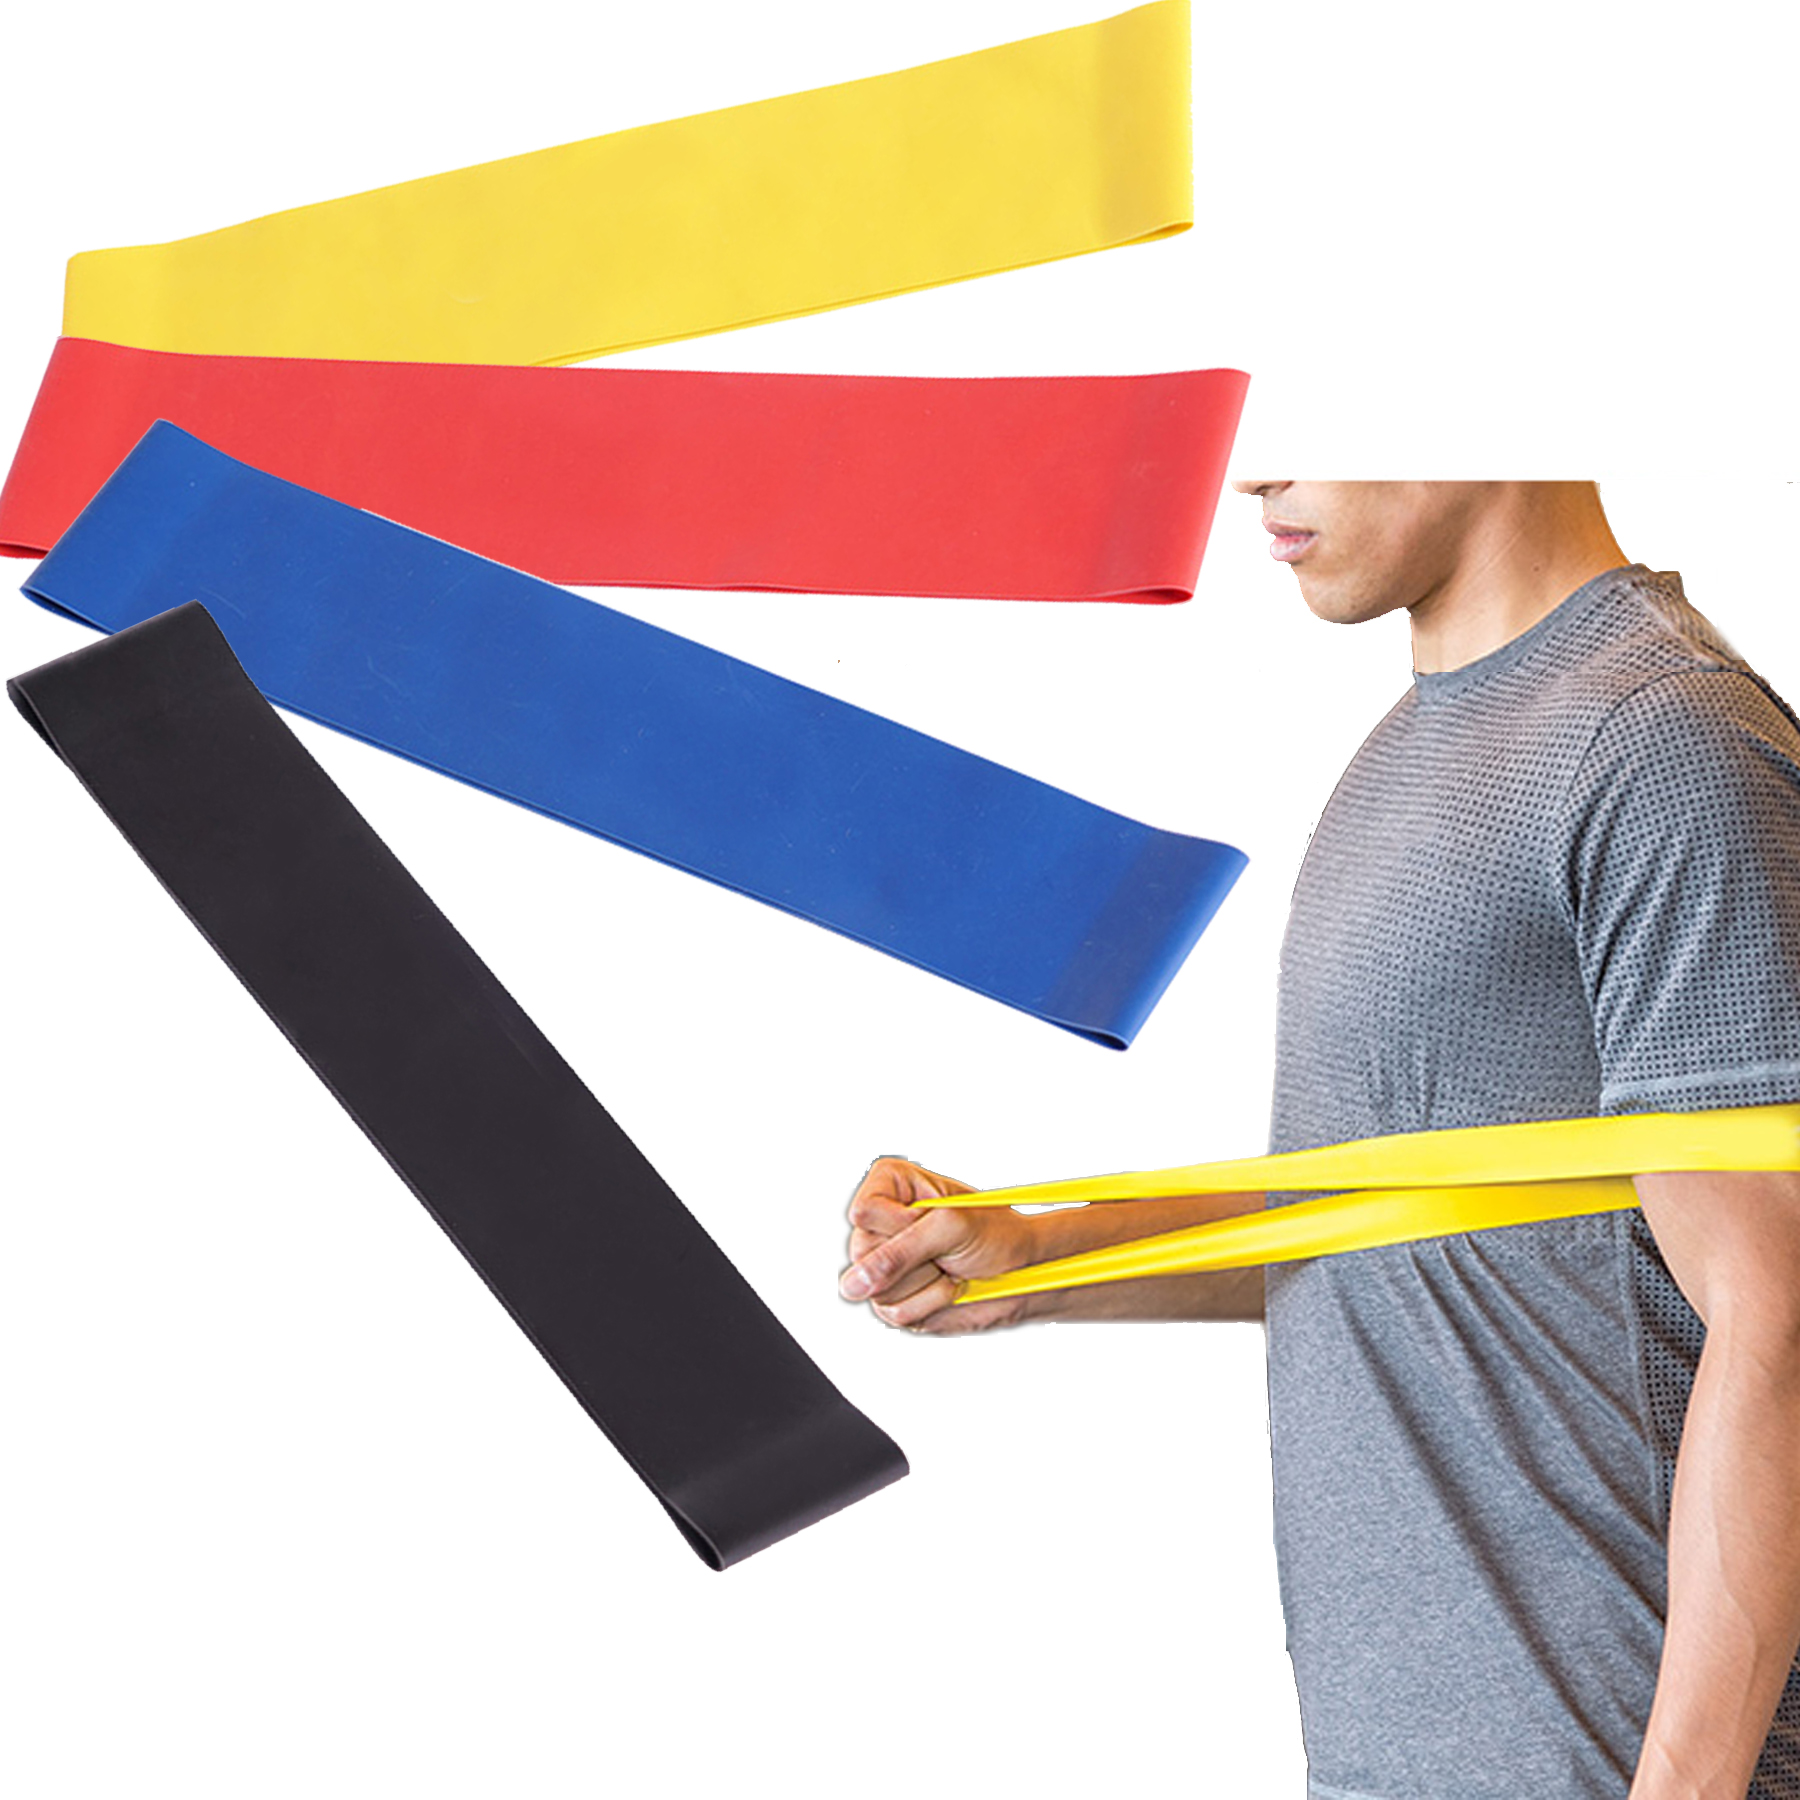 EBK Resistance Bands - Best Exercise Loop Band Set of 4 - Workout Equipment for Yoga Crossfit Fitness Pilates Strength Physical Therapy Mobility Recovery - Training Body Legs Glutes Butt